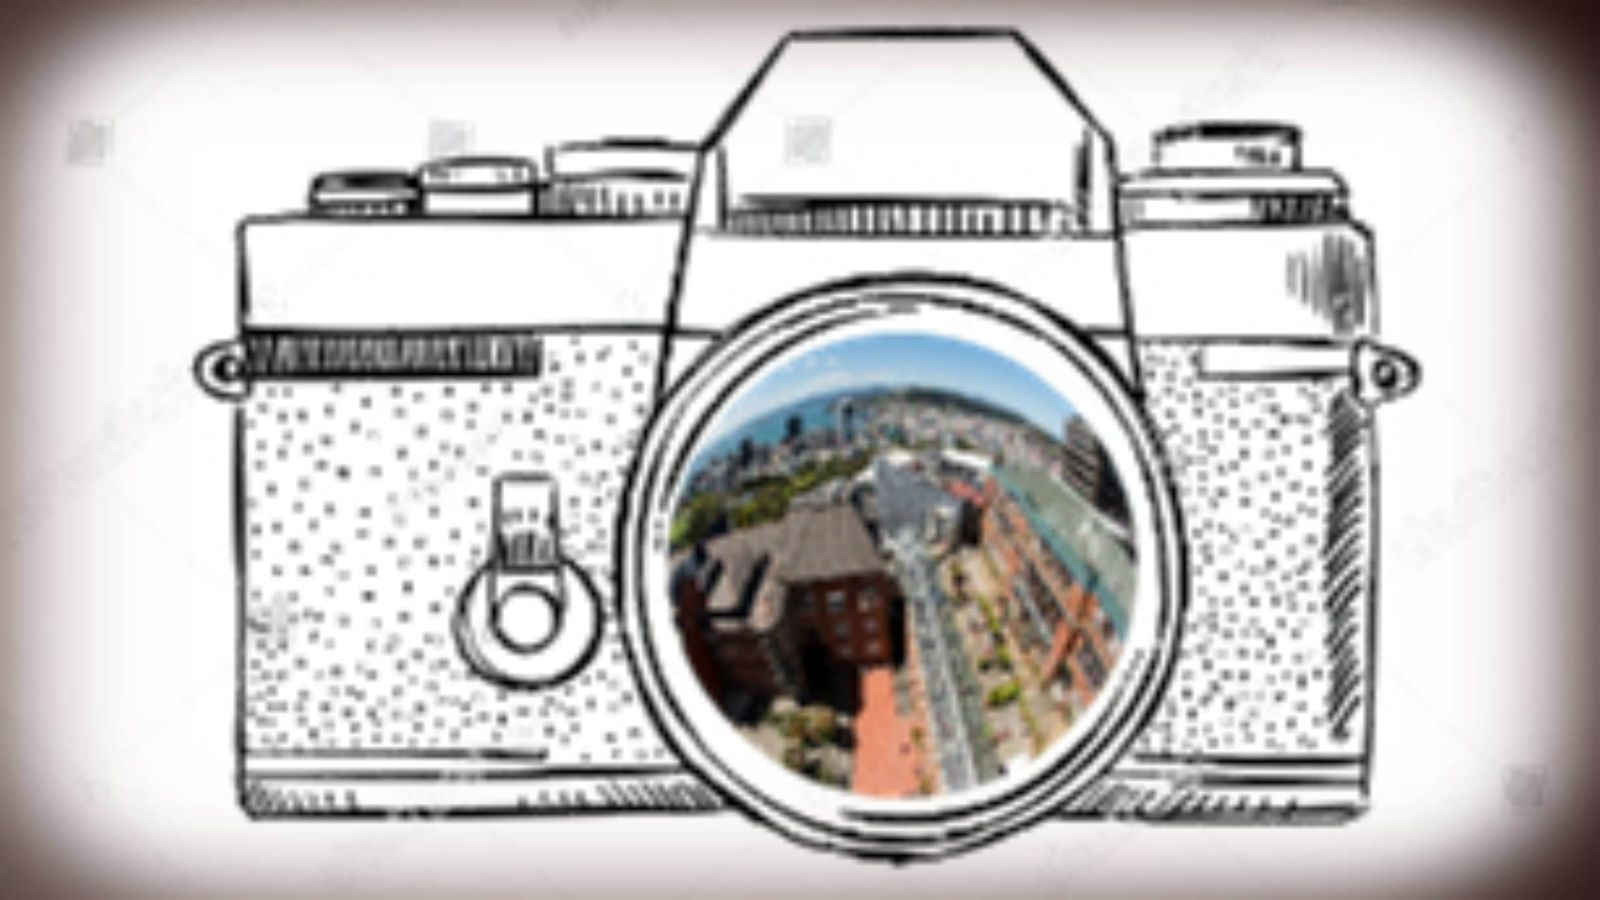 Line drawing of camera